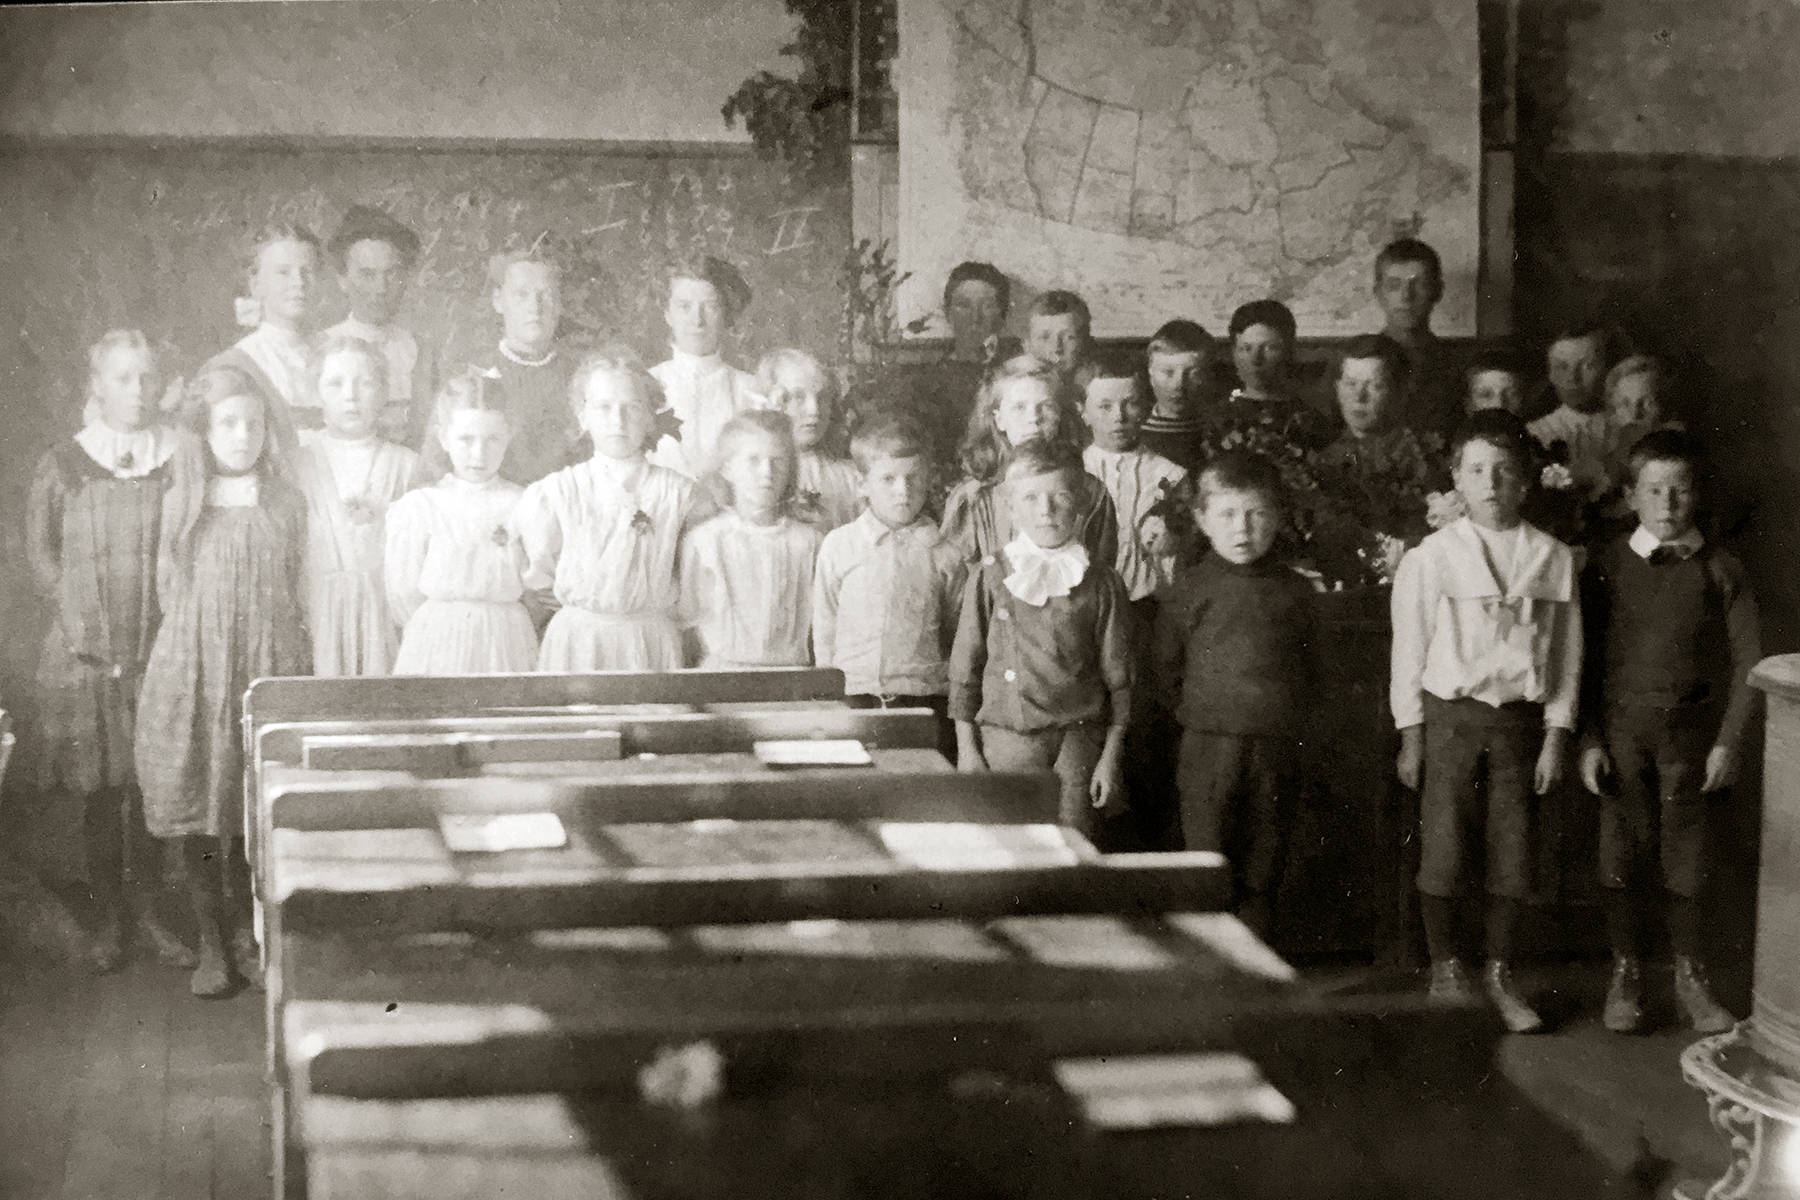 In 1909 students in Garnet Valley near Summerland attended a school in their area. Their teacher was Miss Ballantyne. (Photo courtesy of the Summerland Museum)